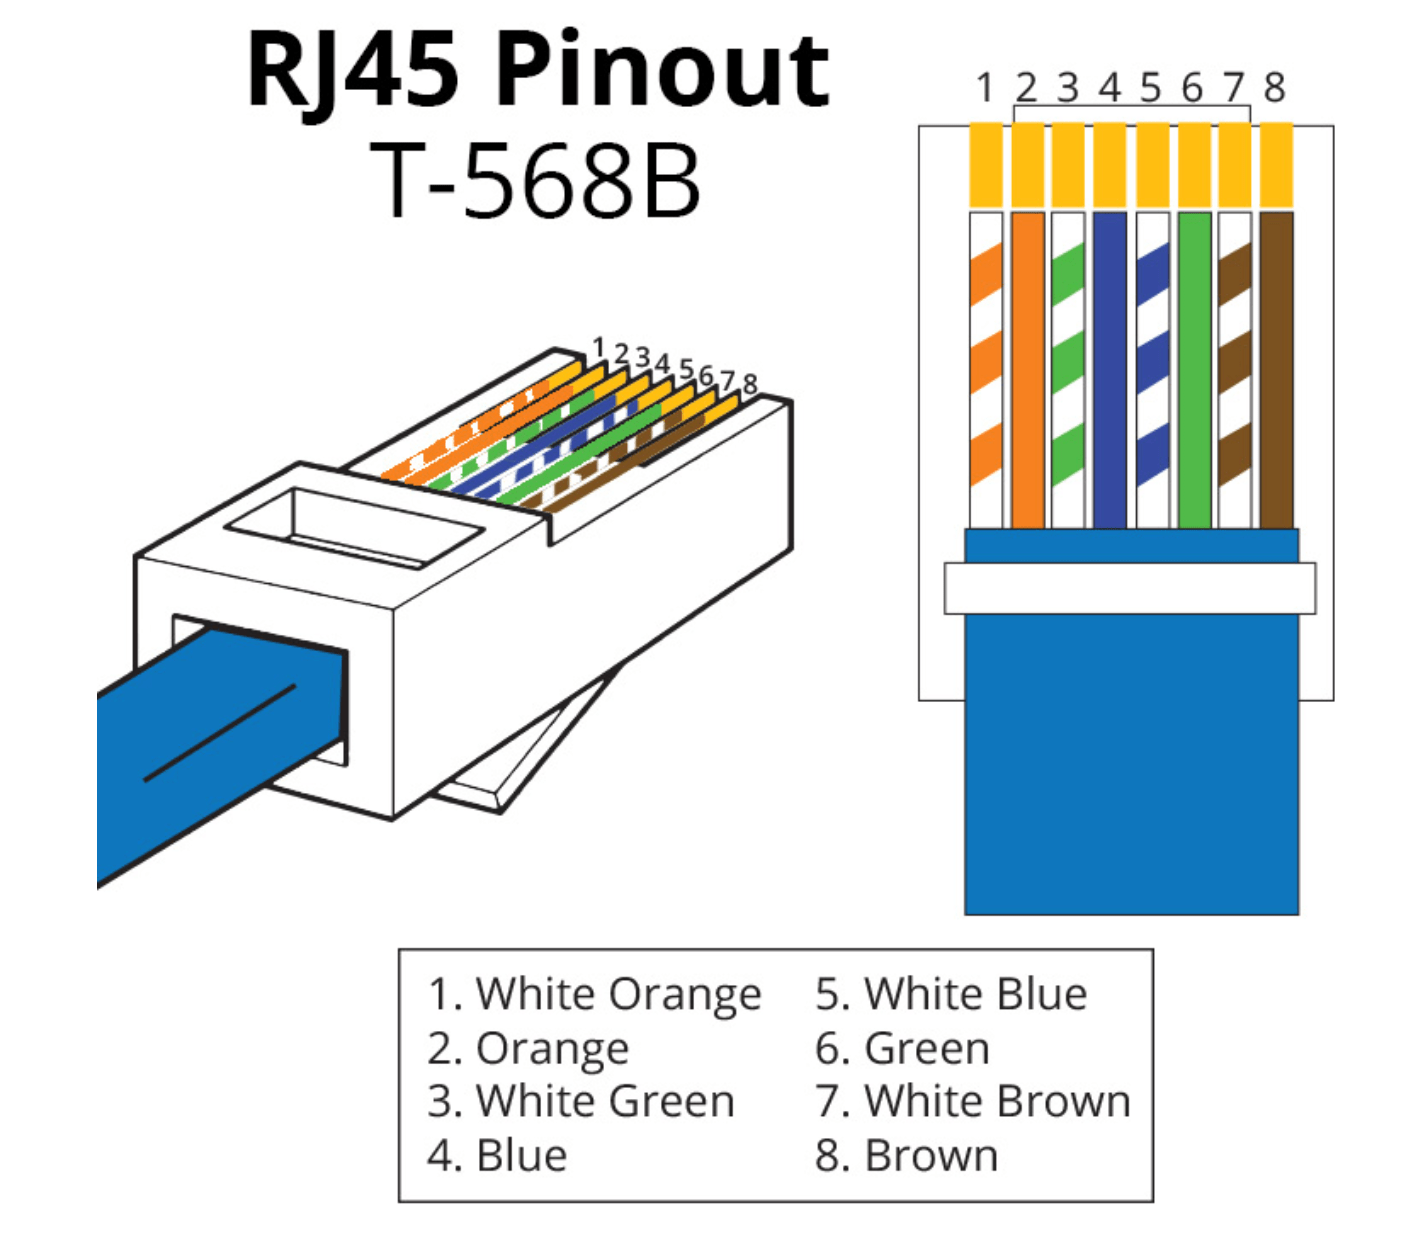 hight resolution of all cables should be terminated using rj45 male connectors using the t568b termination standard as shown pdf file available here of cat5 cat5e or cat6